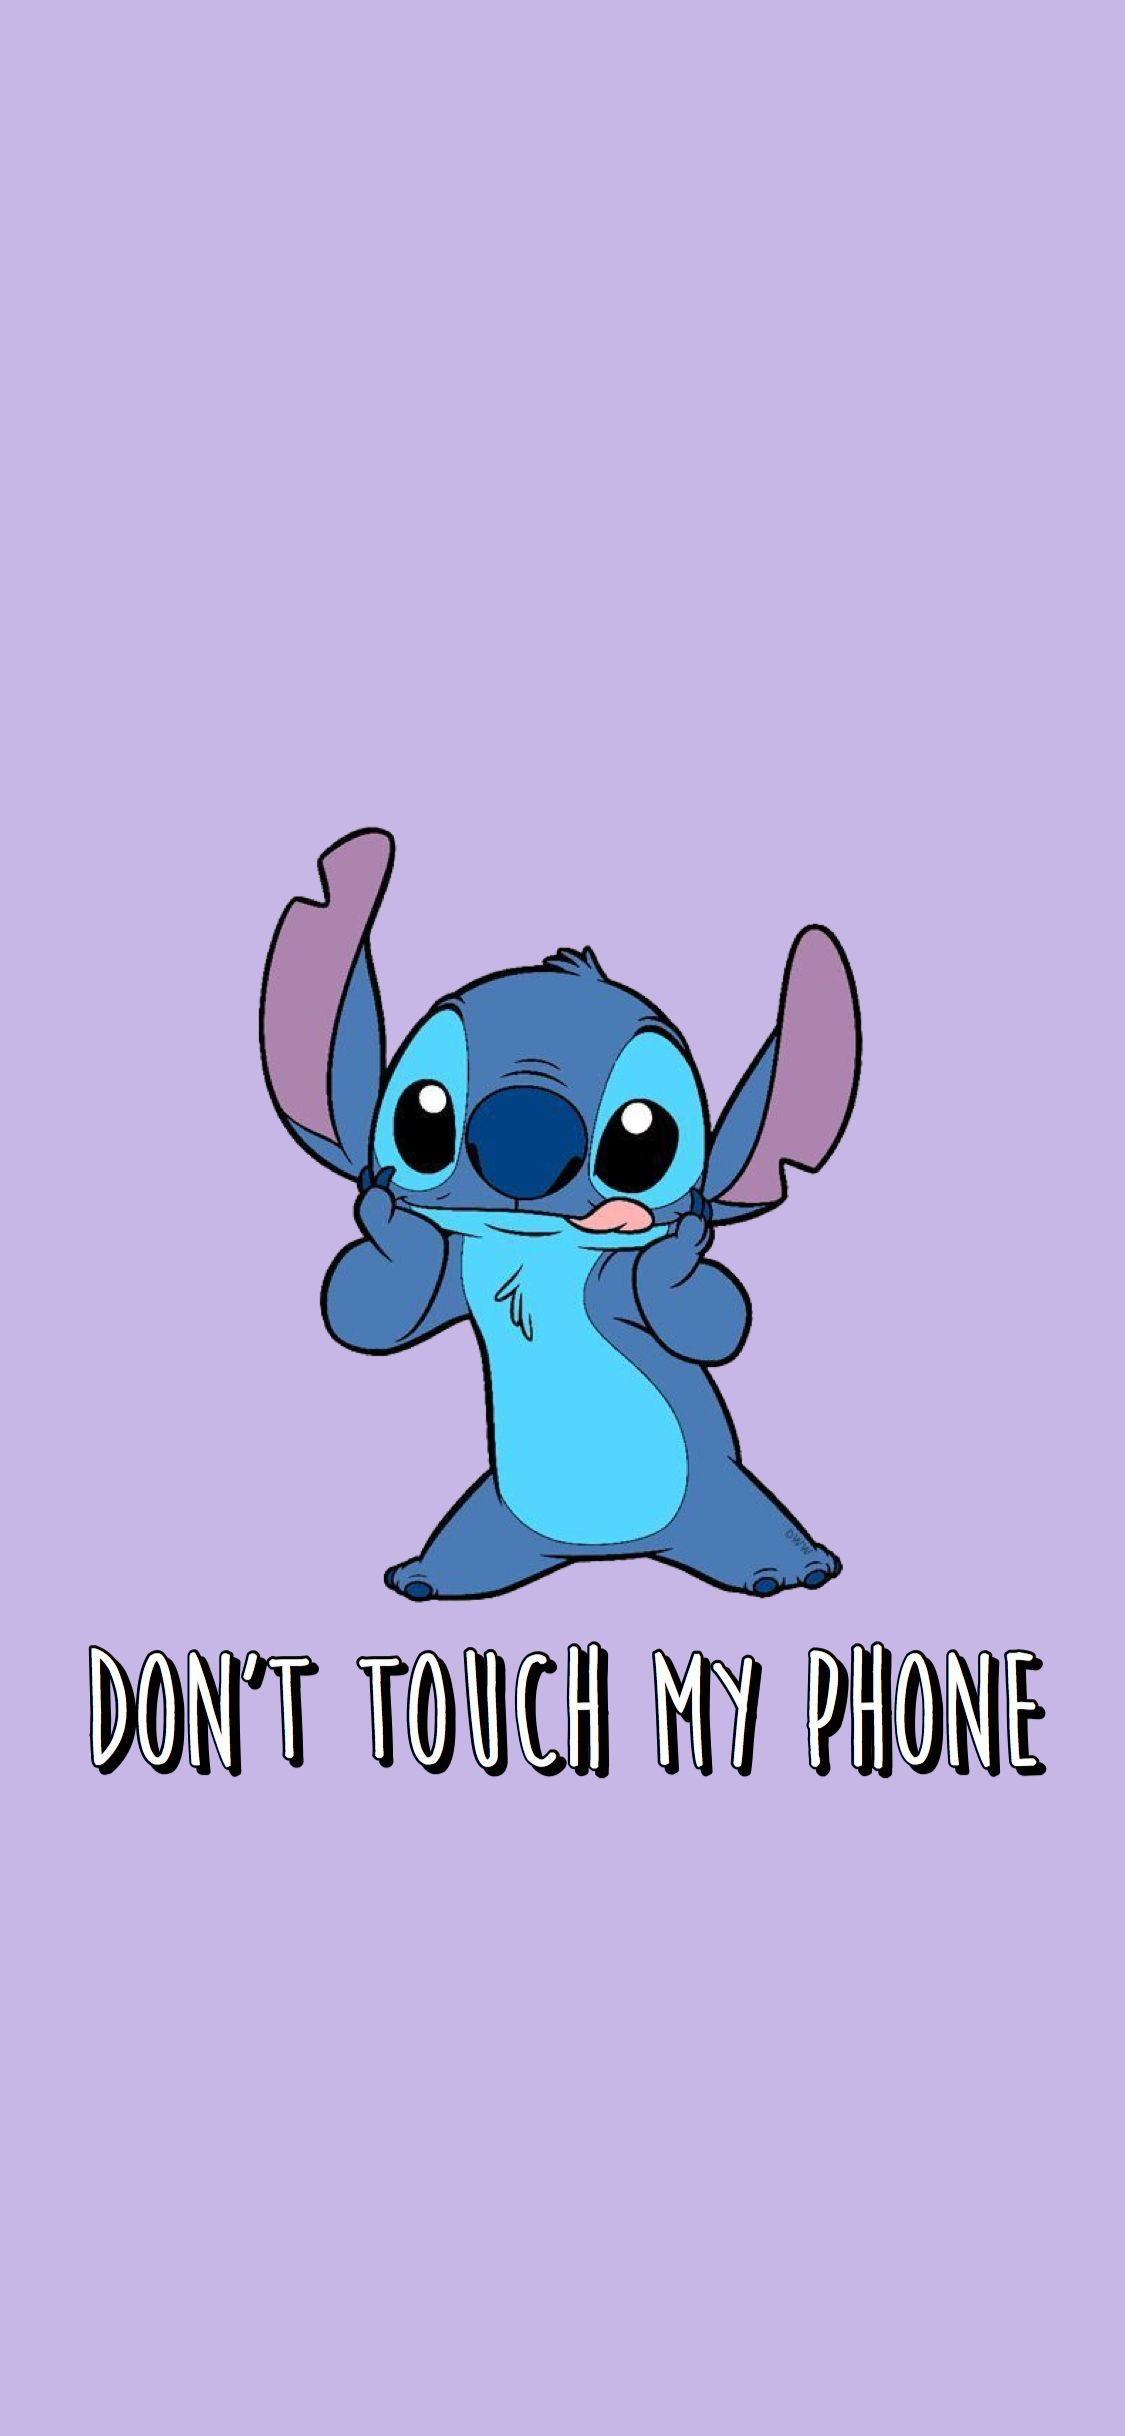 Wallpaper Dont Touch My Phone Stitch